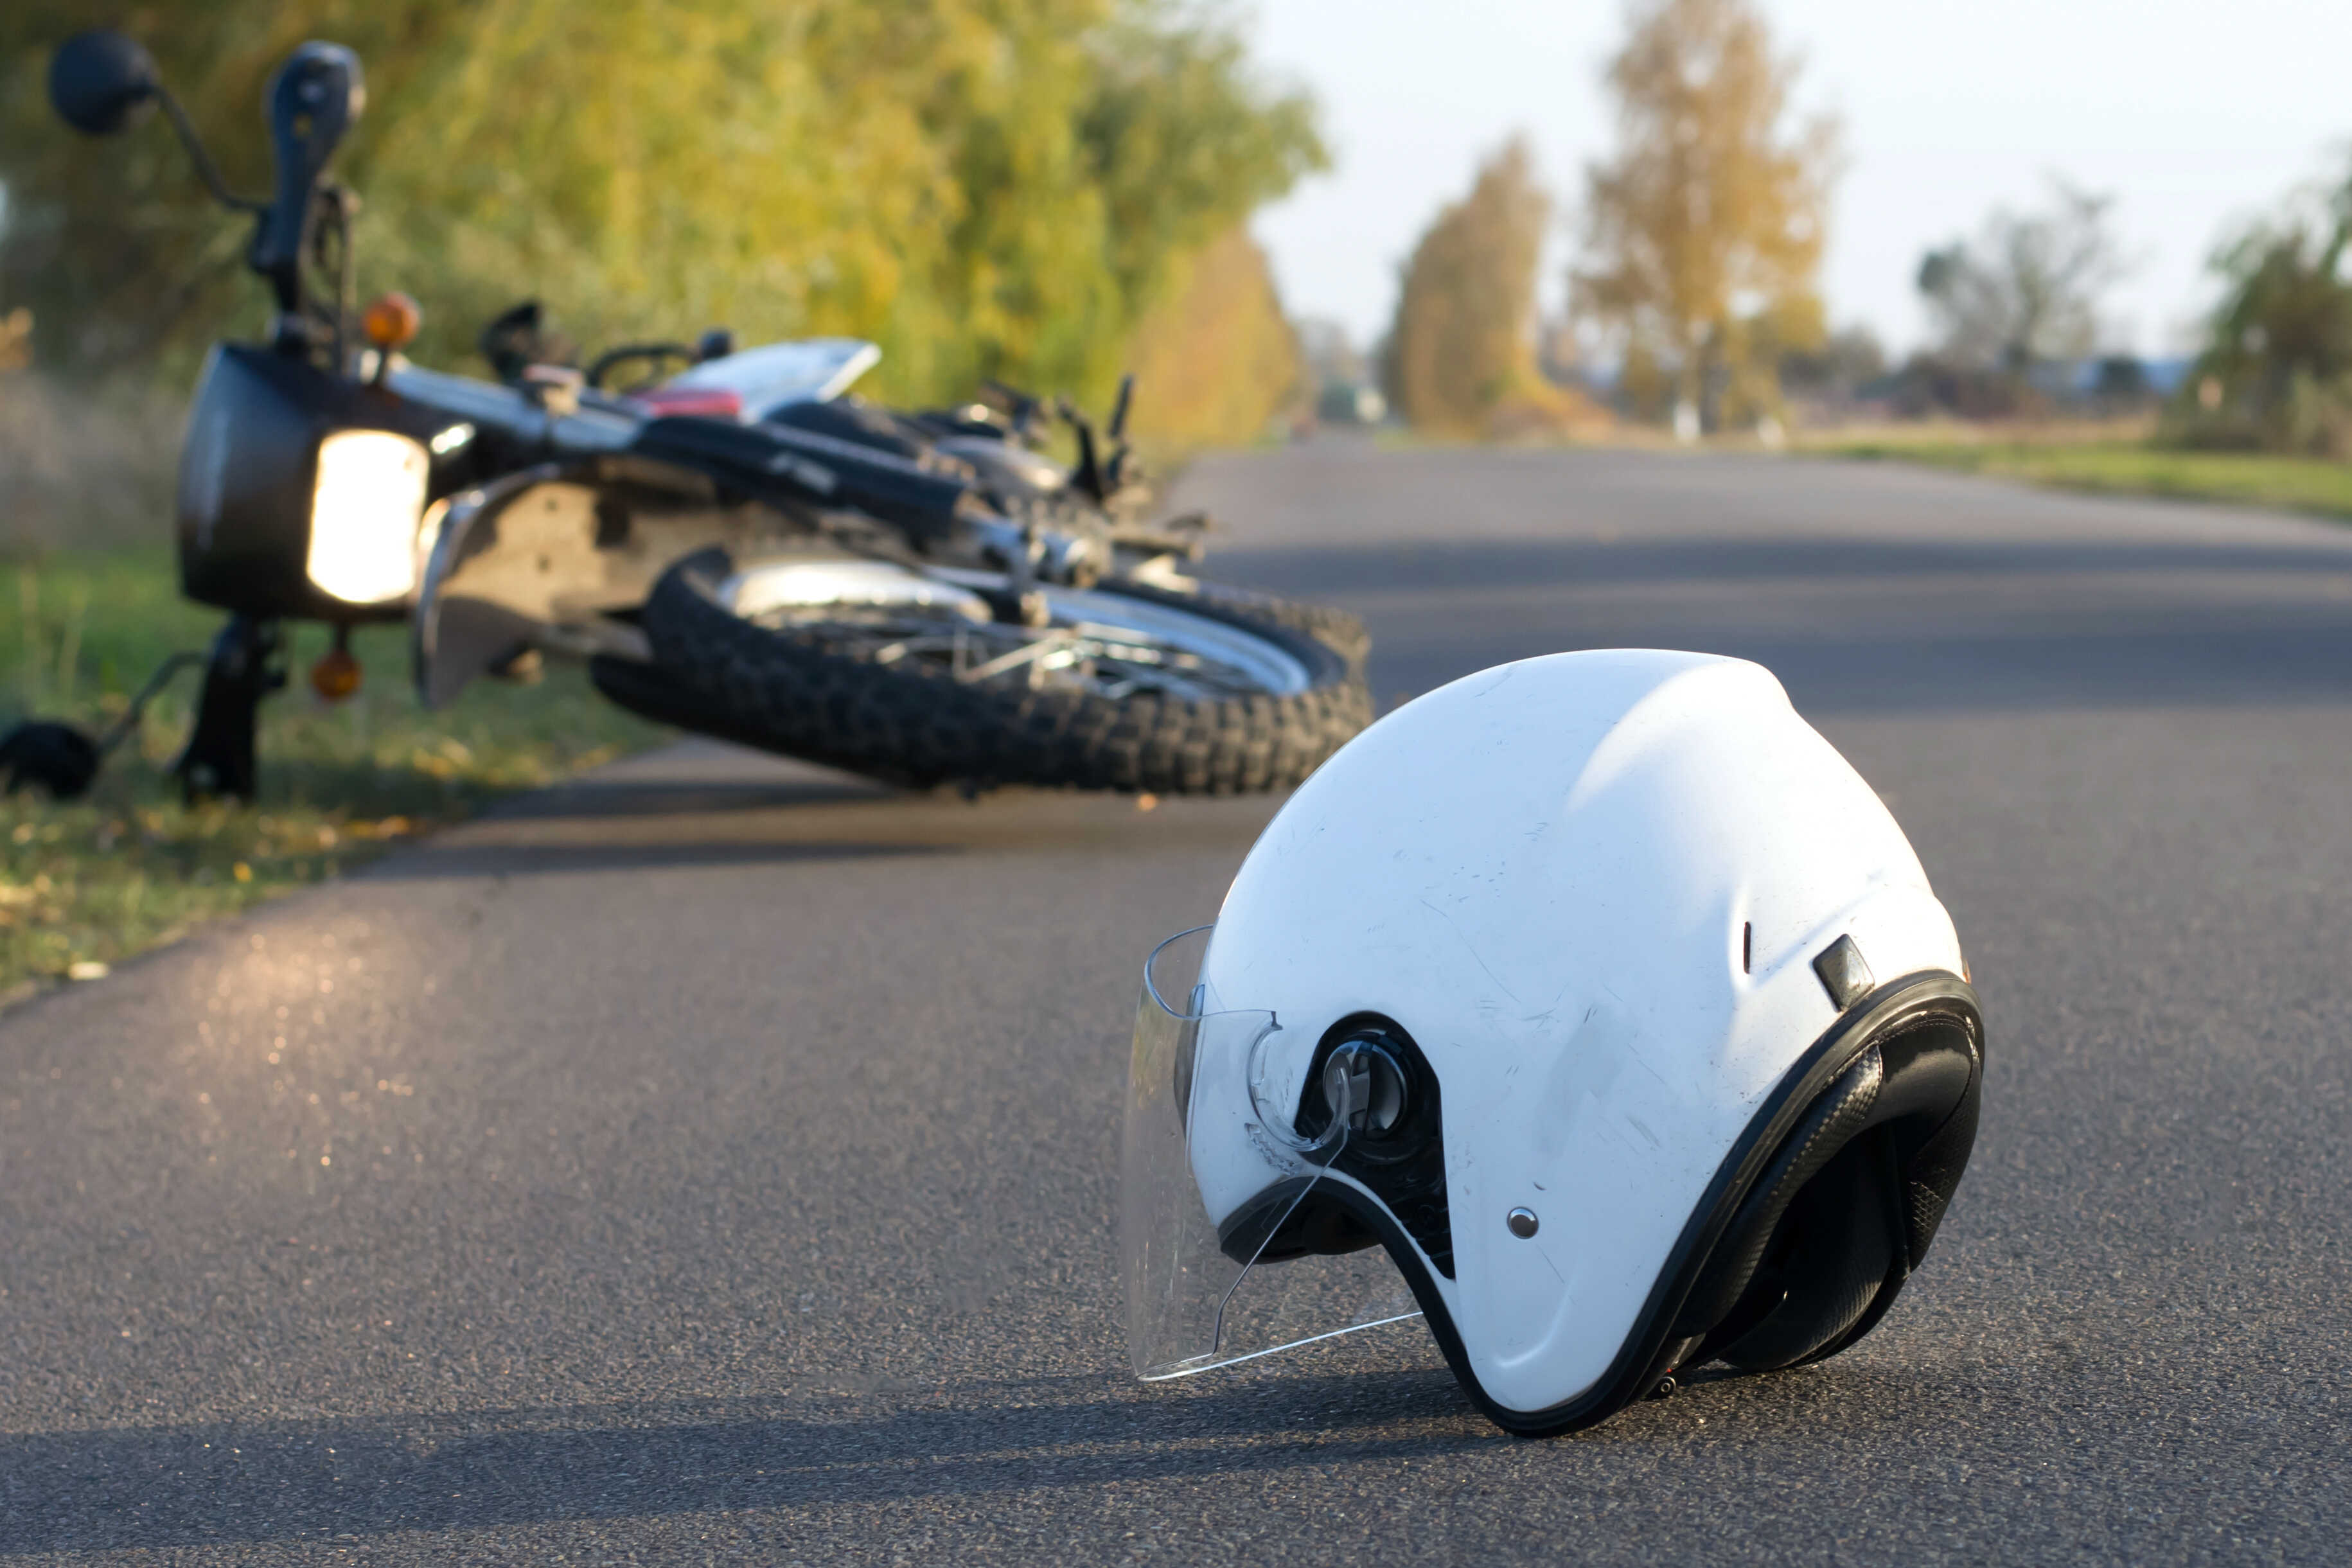 white helmet on pavement beside overturned motorcycle